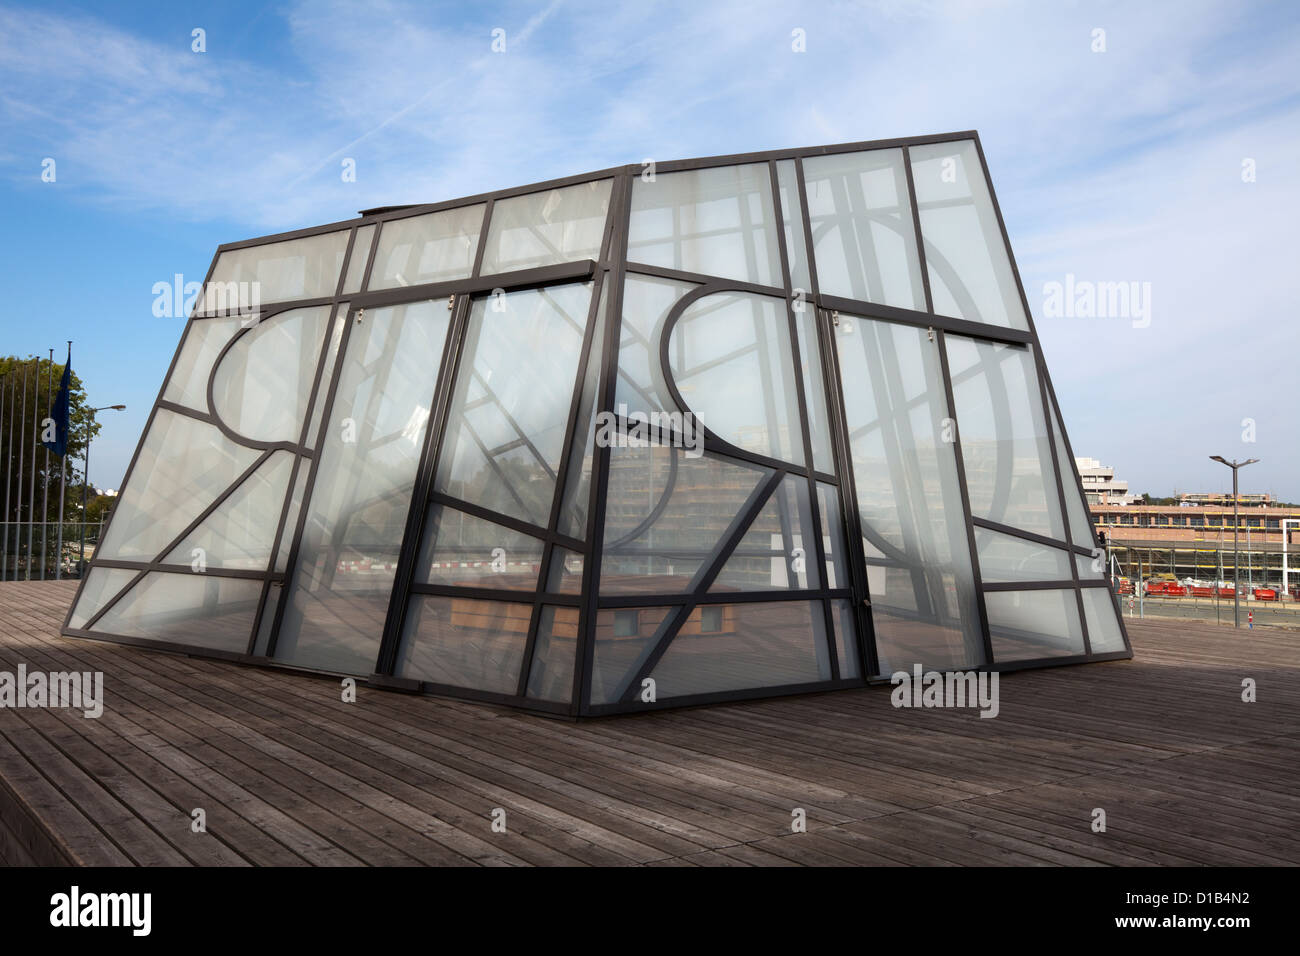 Artwork by Bert Theis, European Pentagon, Safe and Sorry Pavilion, Kirchberg, Luxembourg , Europe - Stock Image